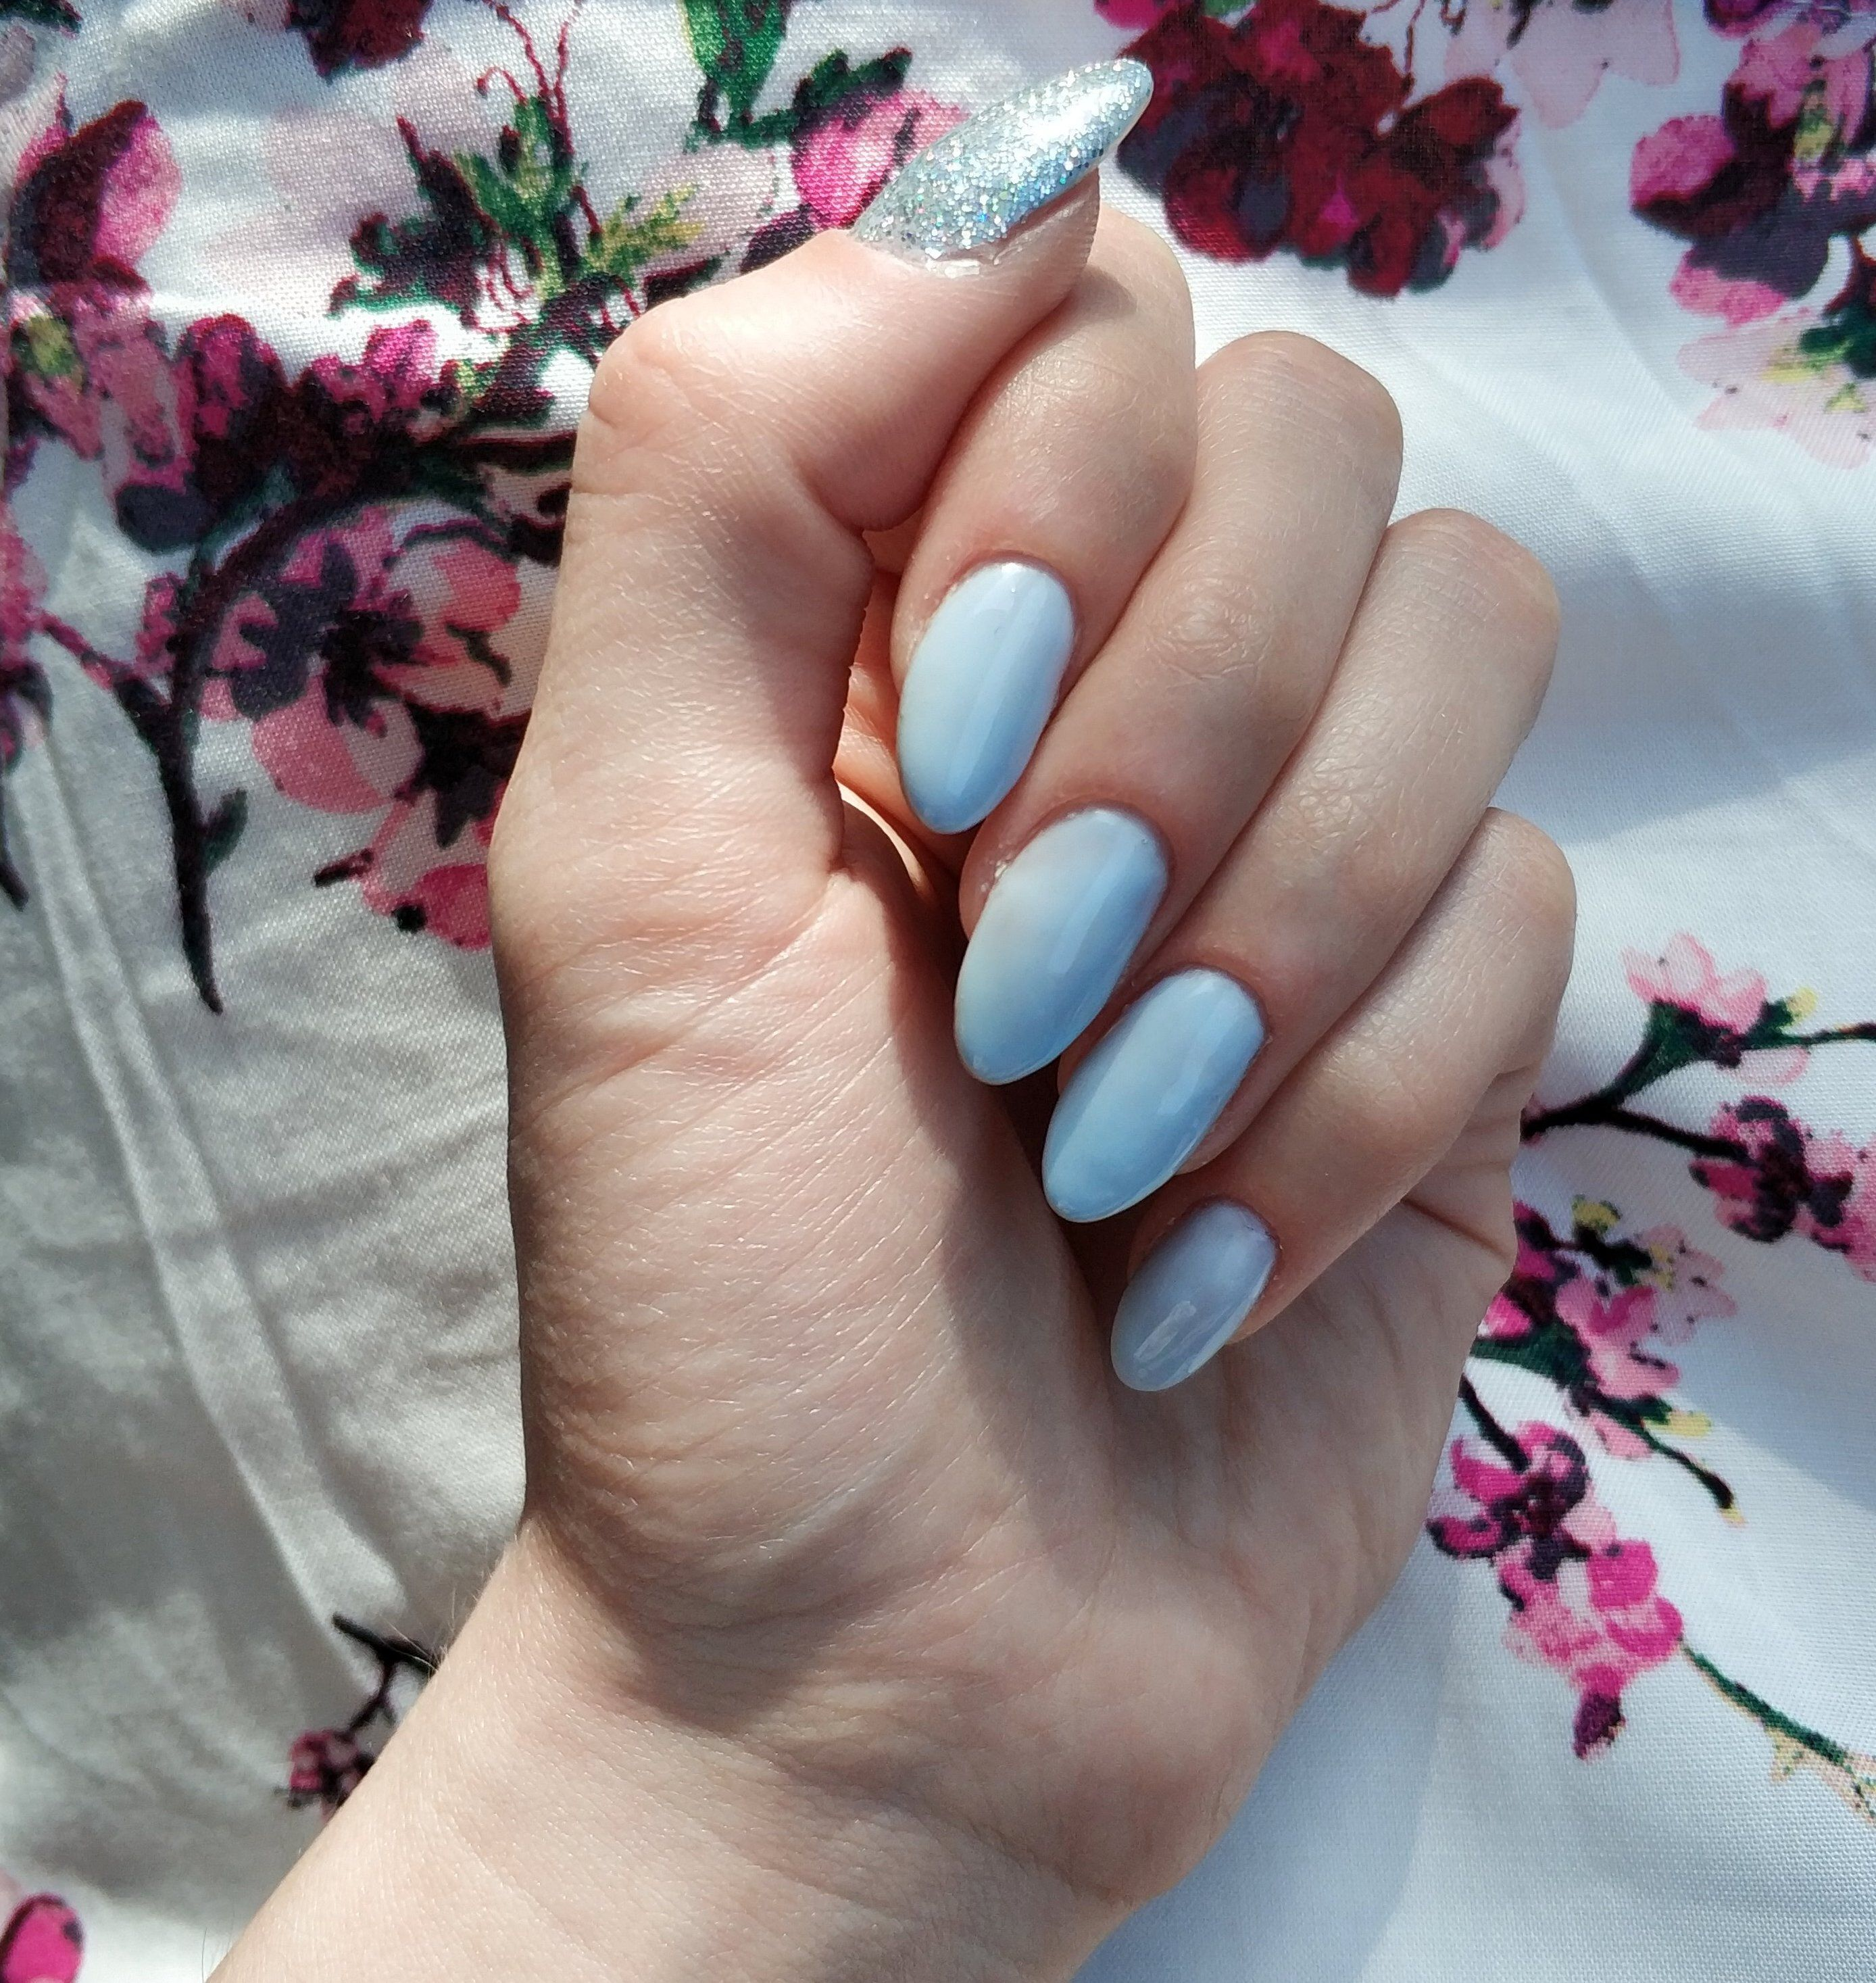 Light Blue Nails With Silver Glitter Accent Nail Pinterest Catherinesullivan2017 Nails Light Blue Nails Glitter Accent Nails